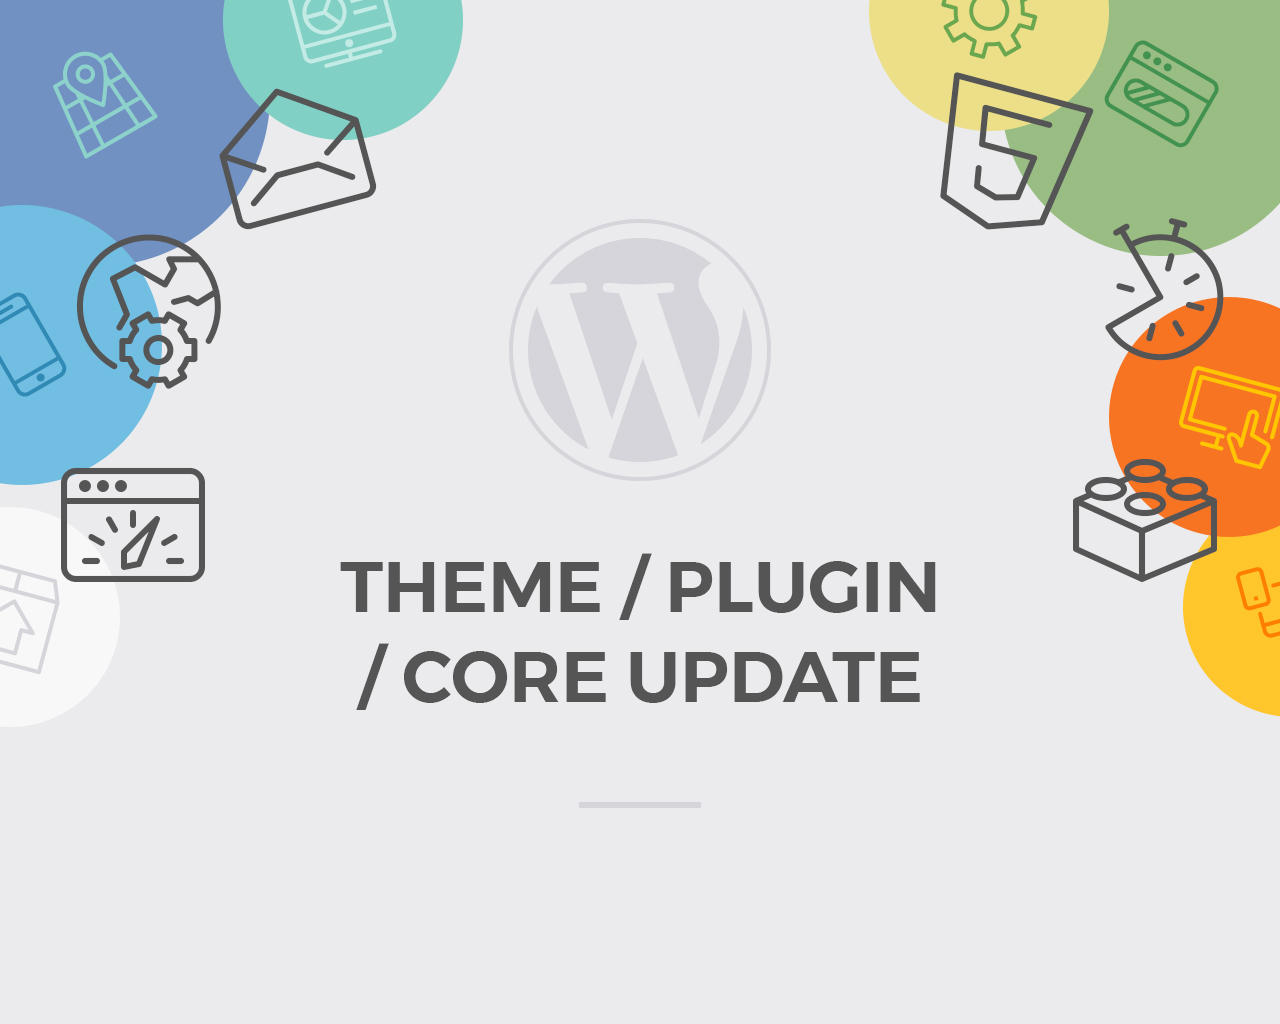 WordPress Theme/Plugin/Core Update by QuanticaLabs - 109784